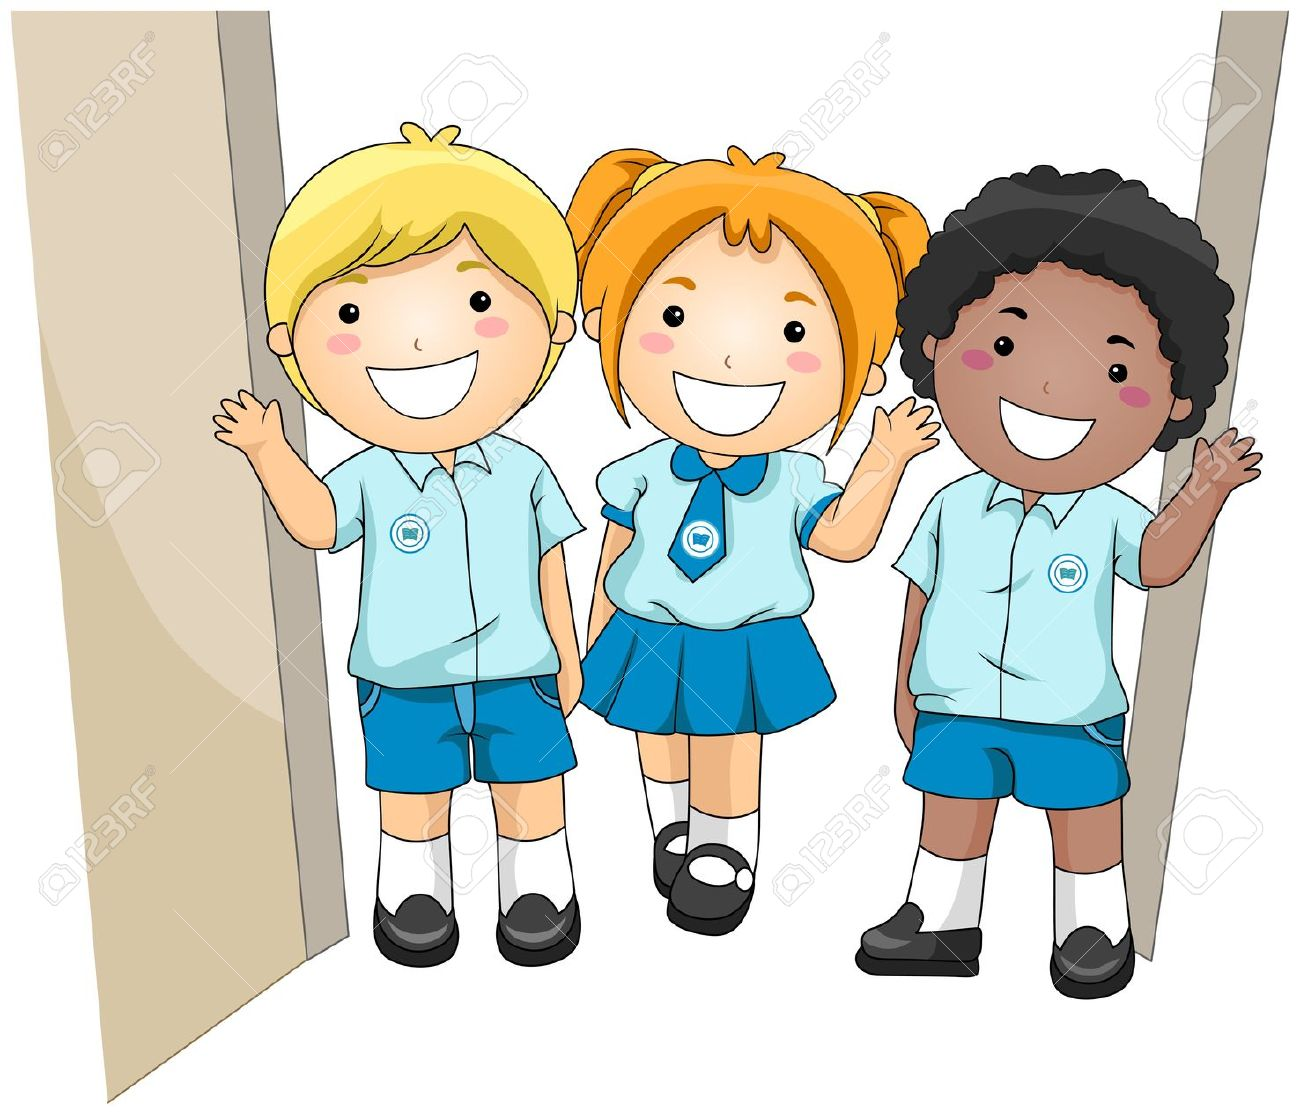 Students clipart clipartlook.